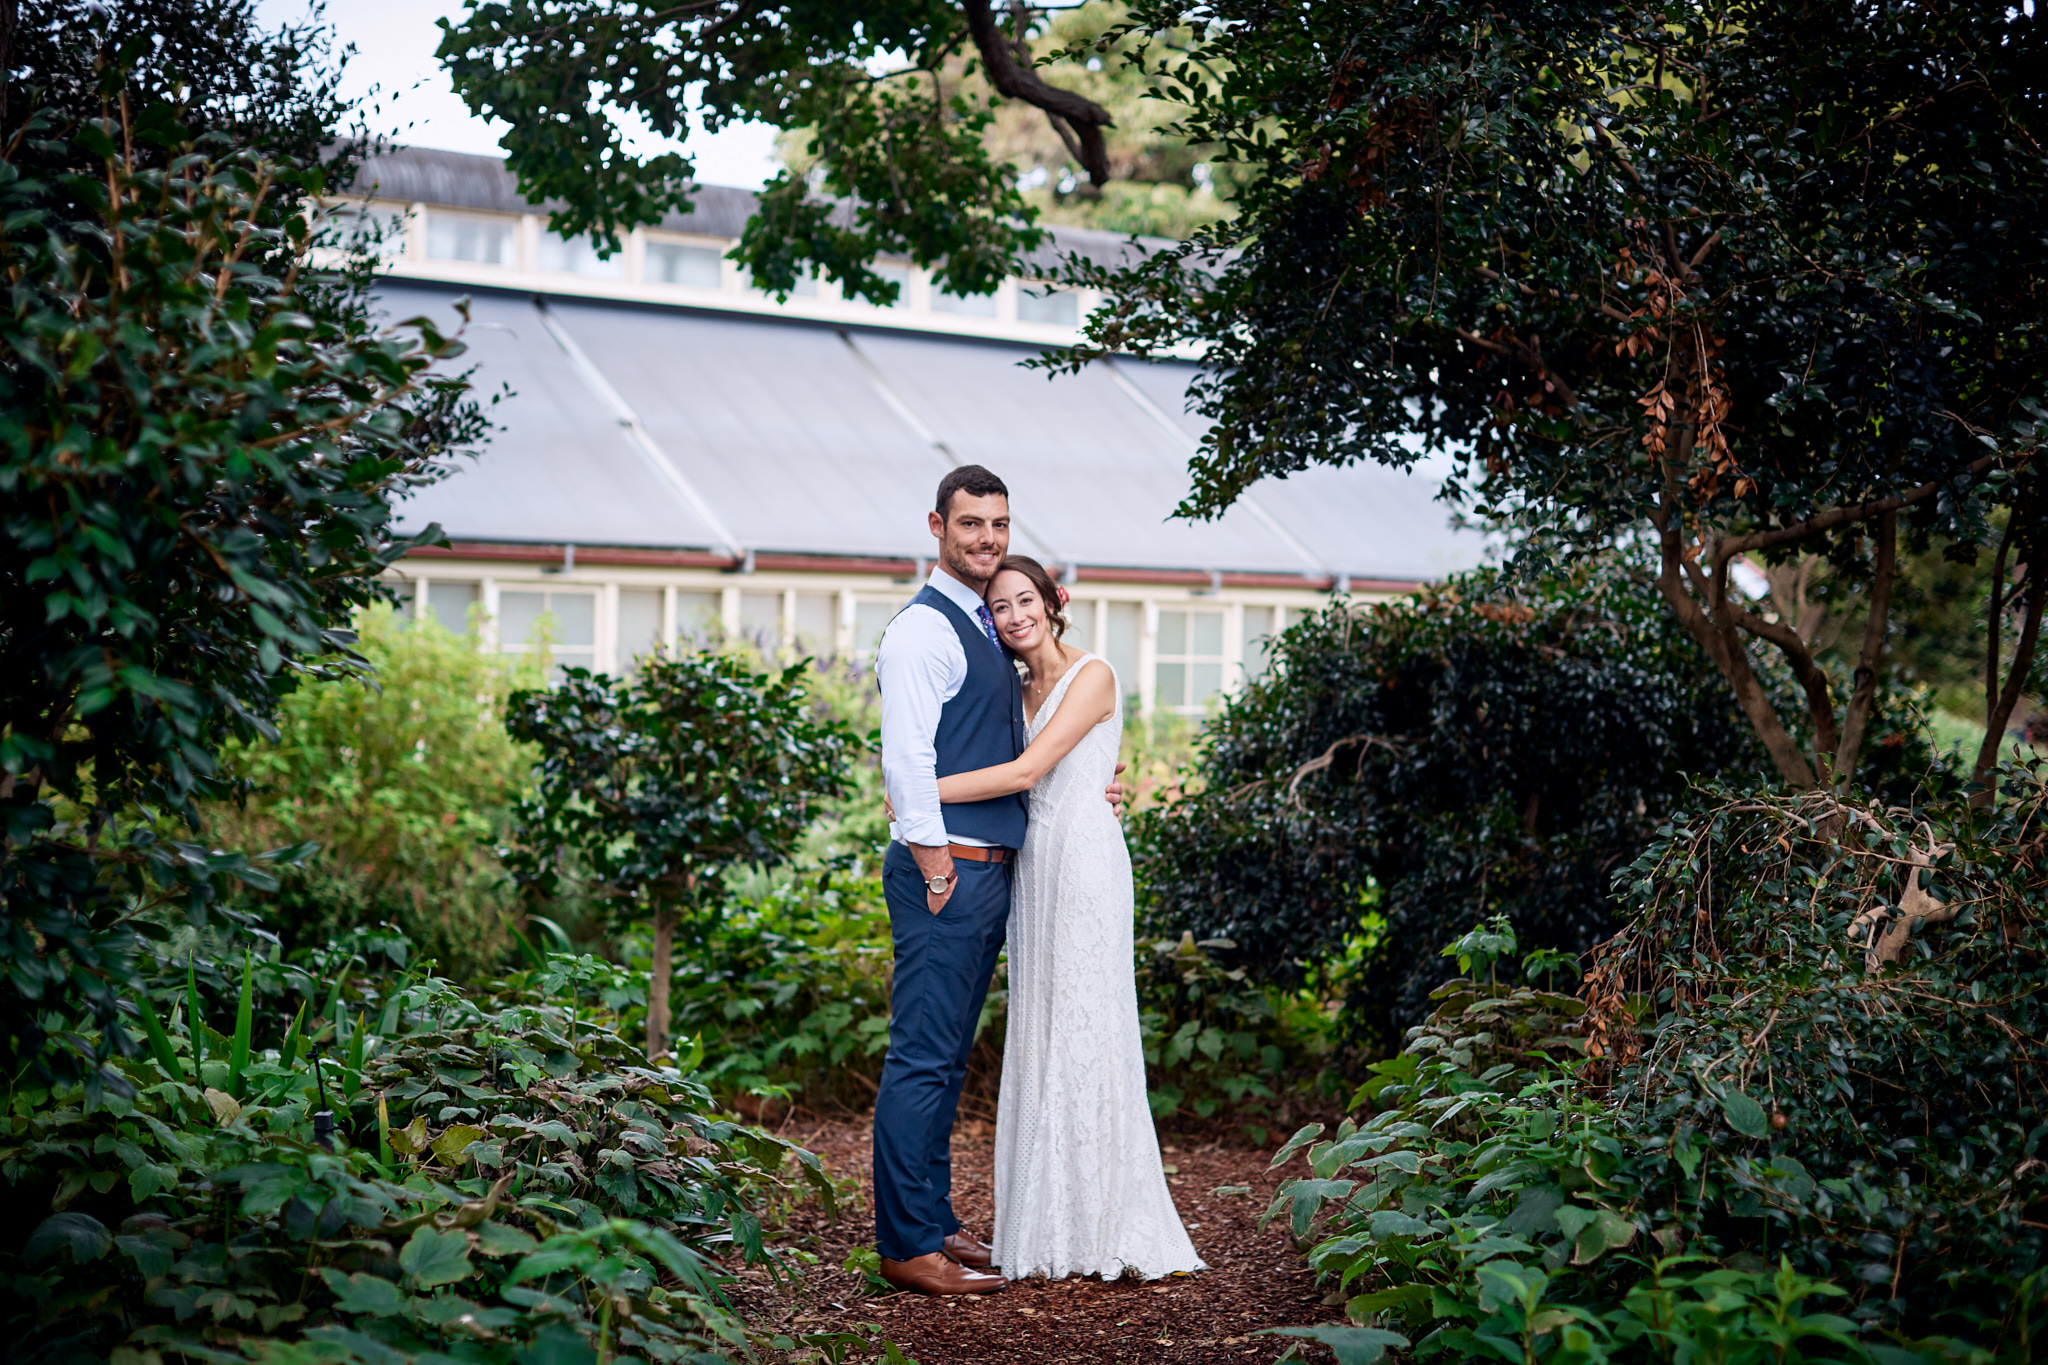 Bride and groom in garden.jpg